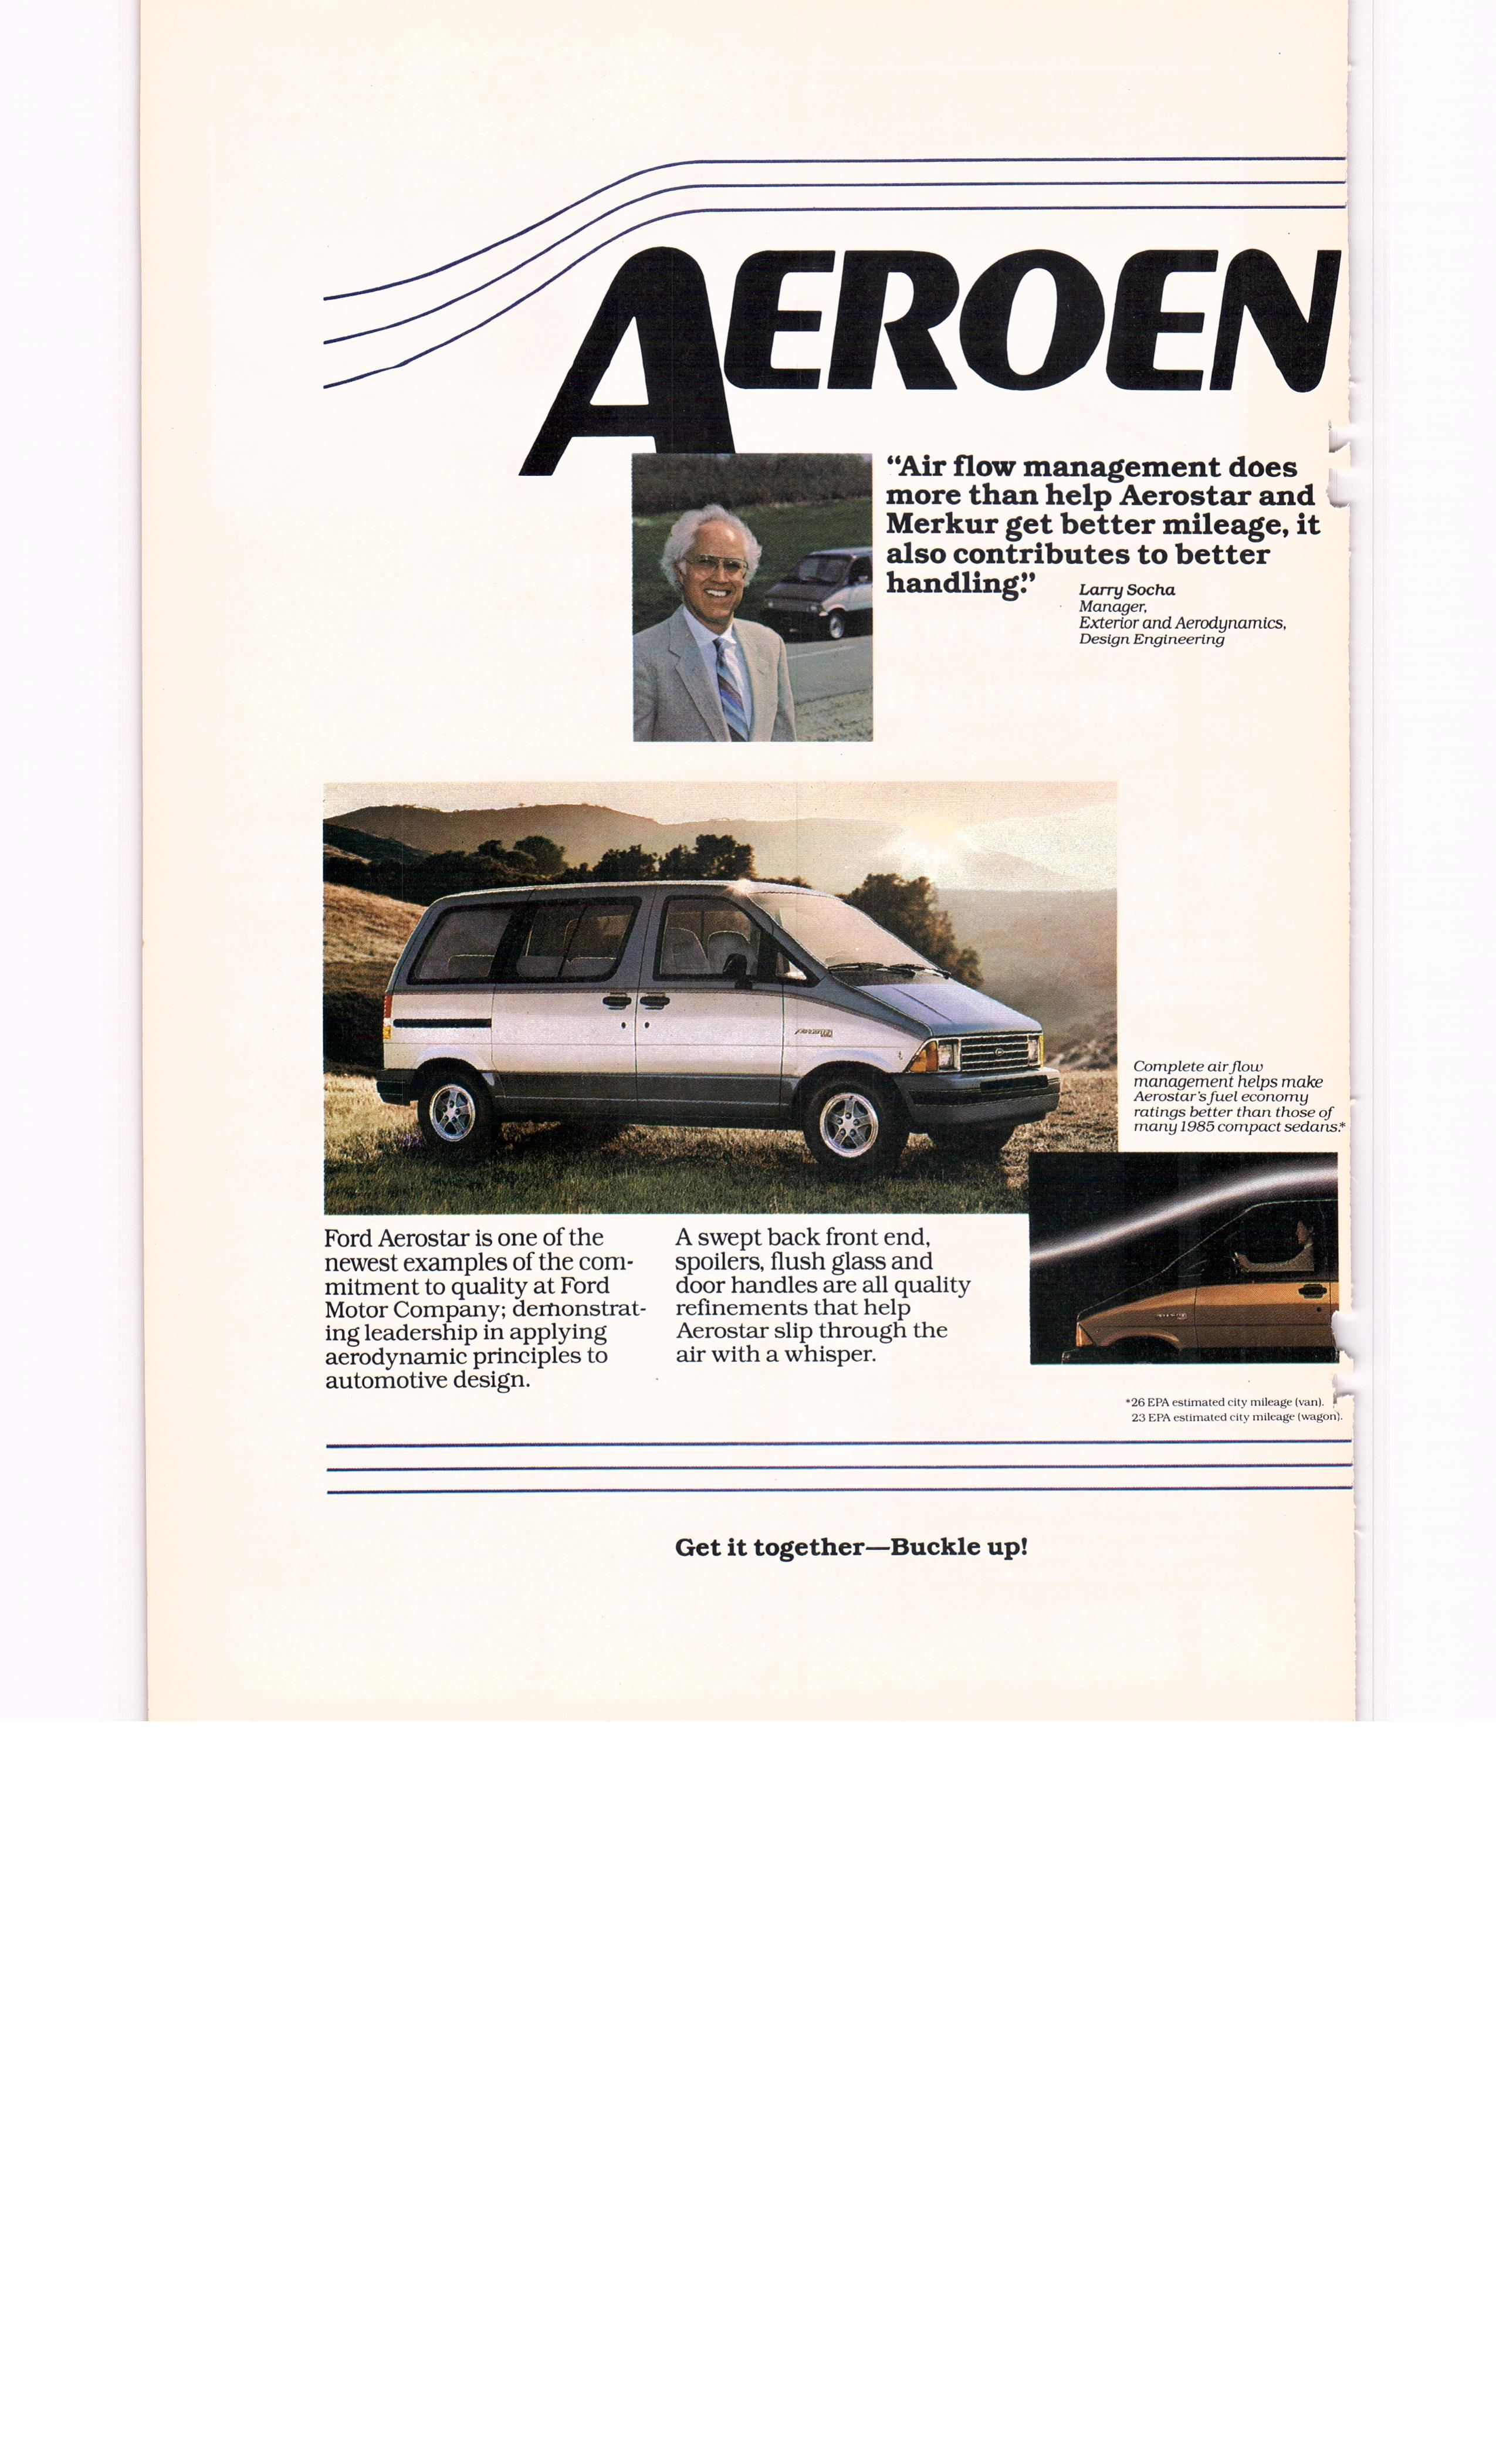 1985 Ford Aerostar Debut Ad 3 Of 4 National Geographic October 1985 Ford Aerostar Automotive Design Ford